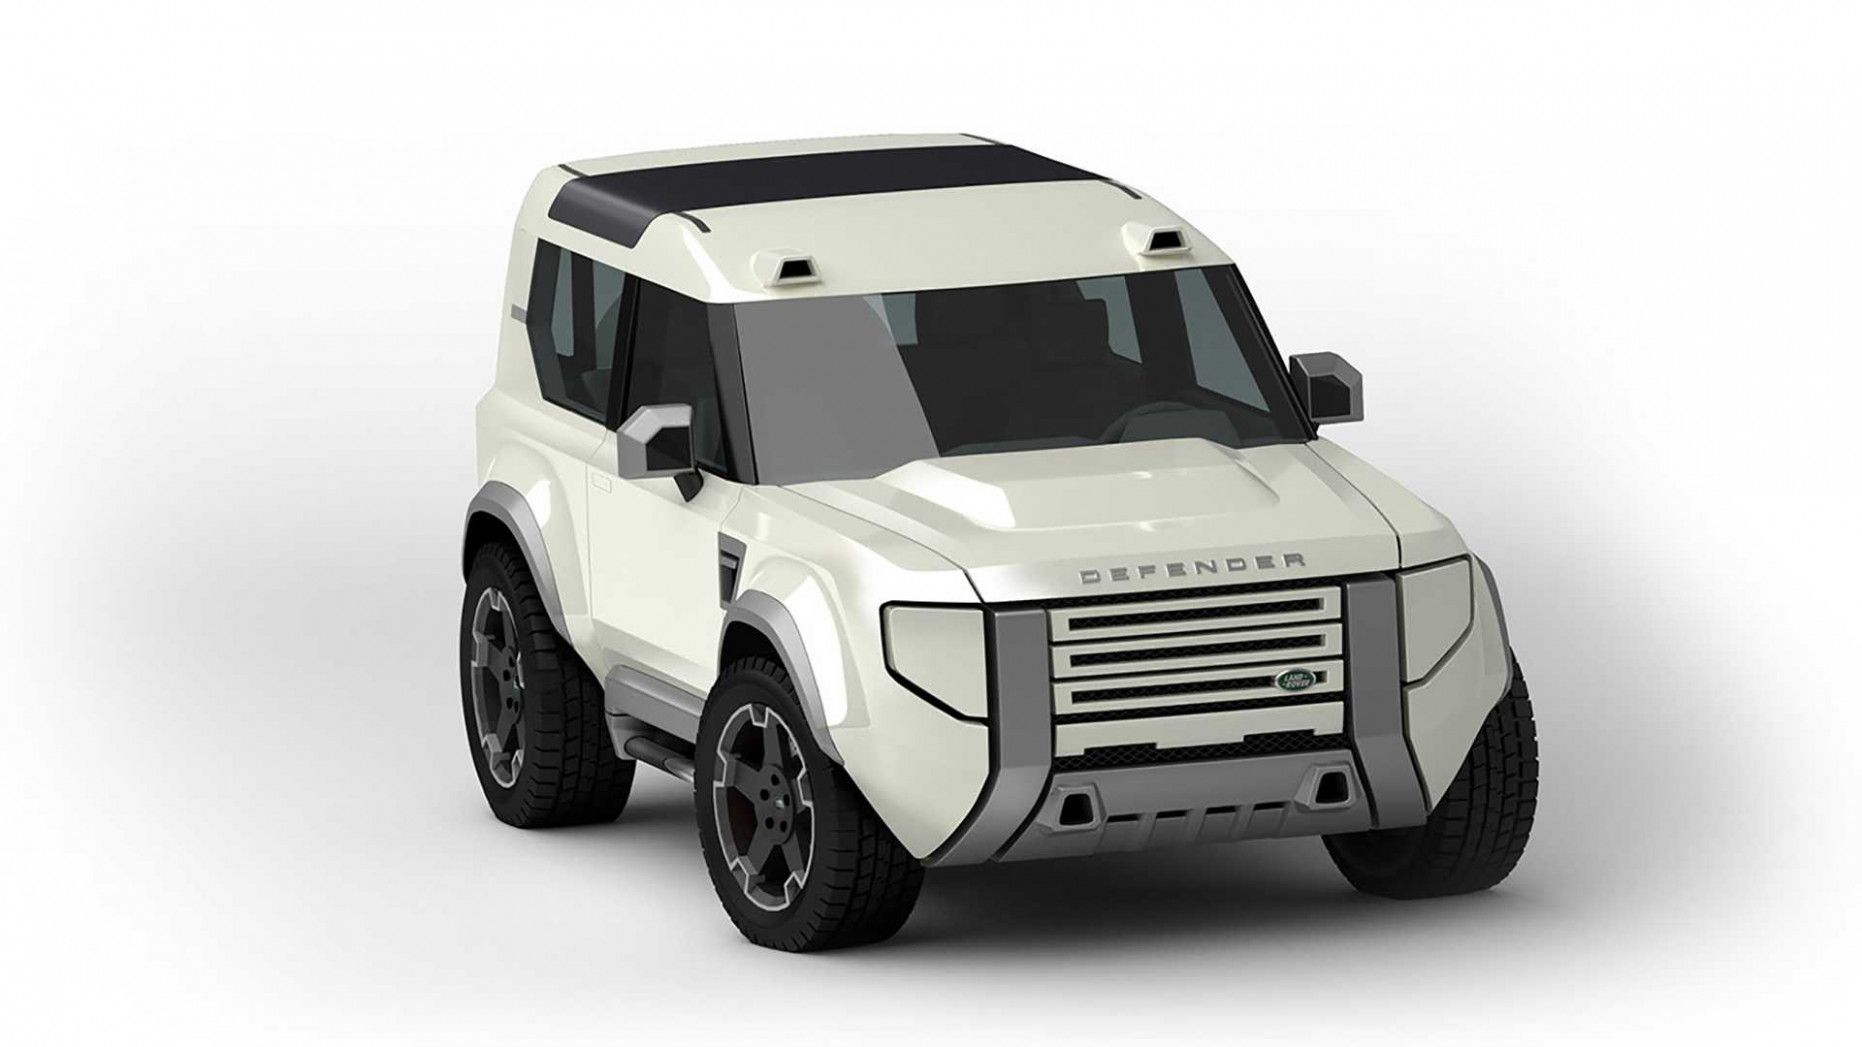 2021 Land Rover Lr4 New Mannequin And Efficiency Land Rover Defender Land Rover Land Rover Models